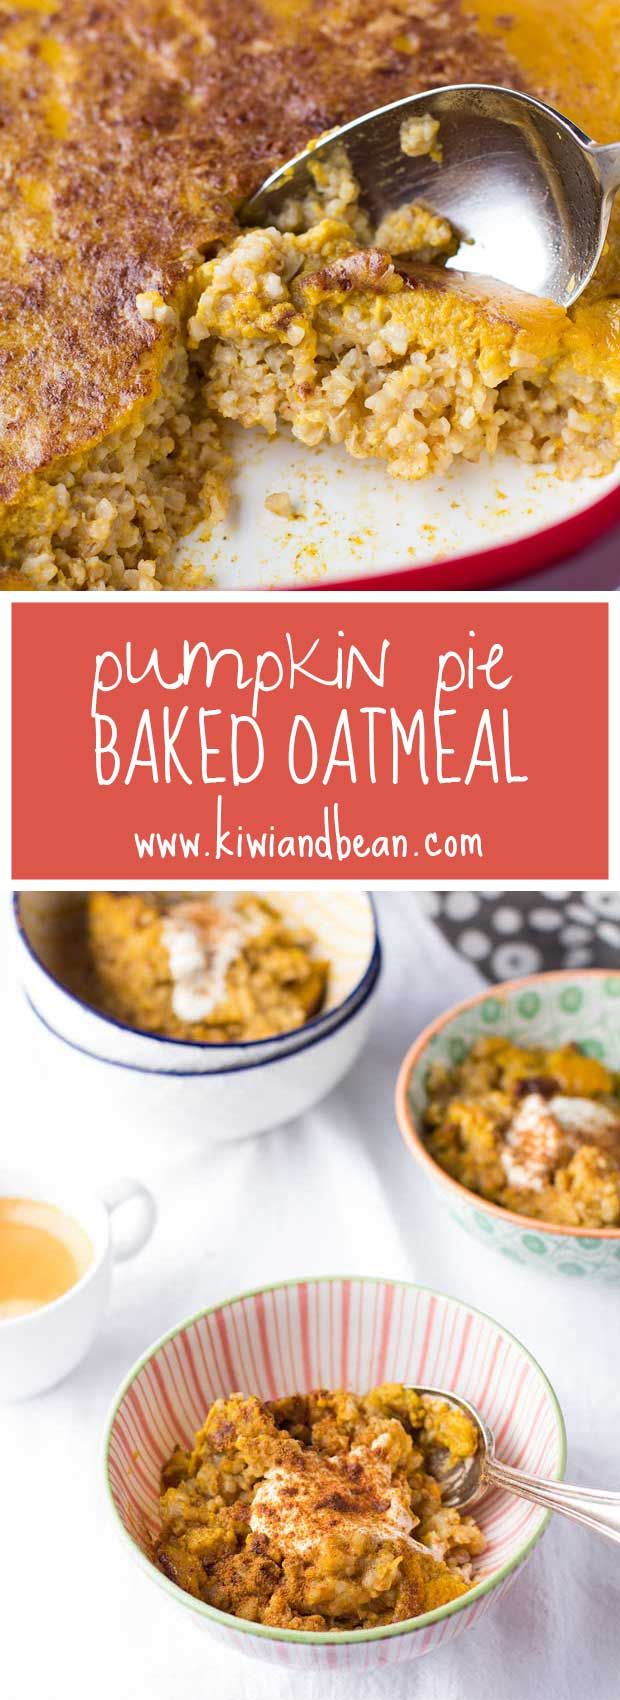 Wake up to the wafting aroma of pumpkin spice! This baked steel cut oatmeal is topped with a layer of pumpkin custard that looks and tastes just like pumpkin pie!